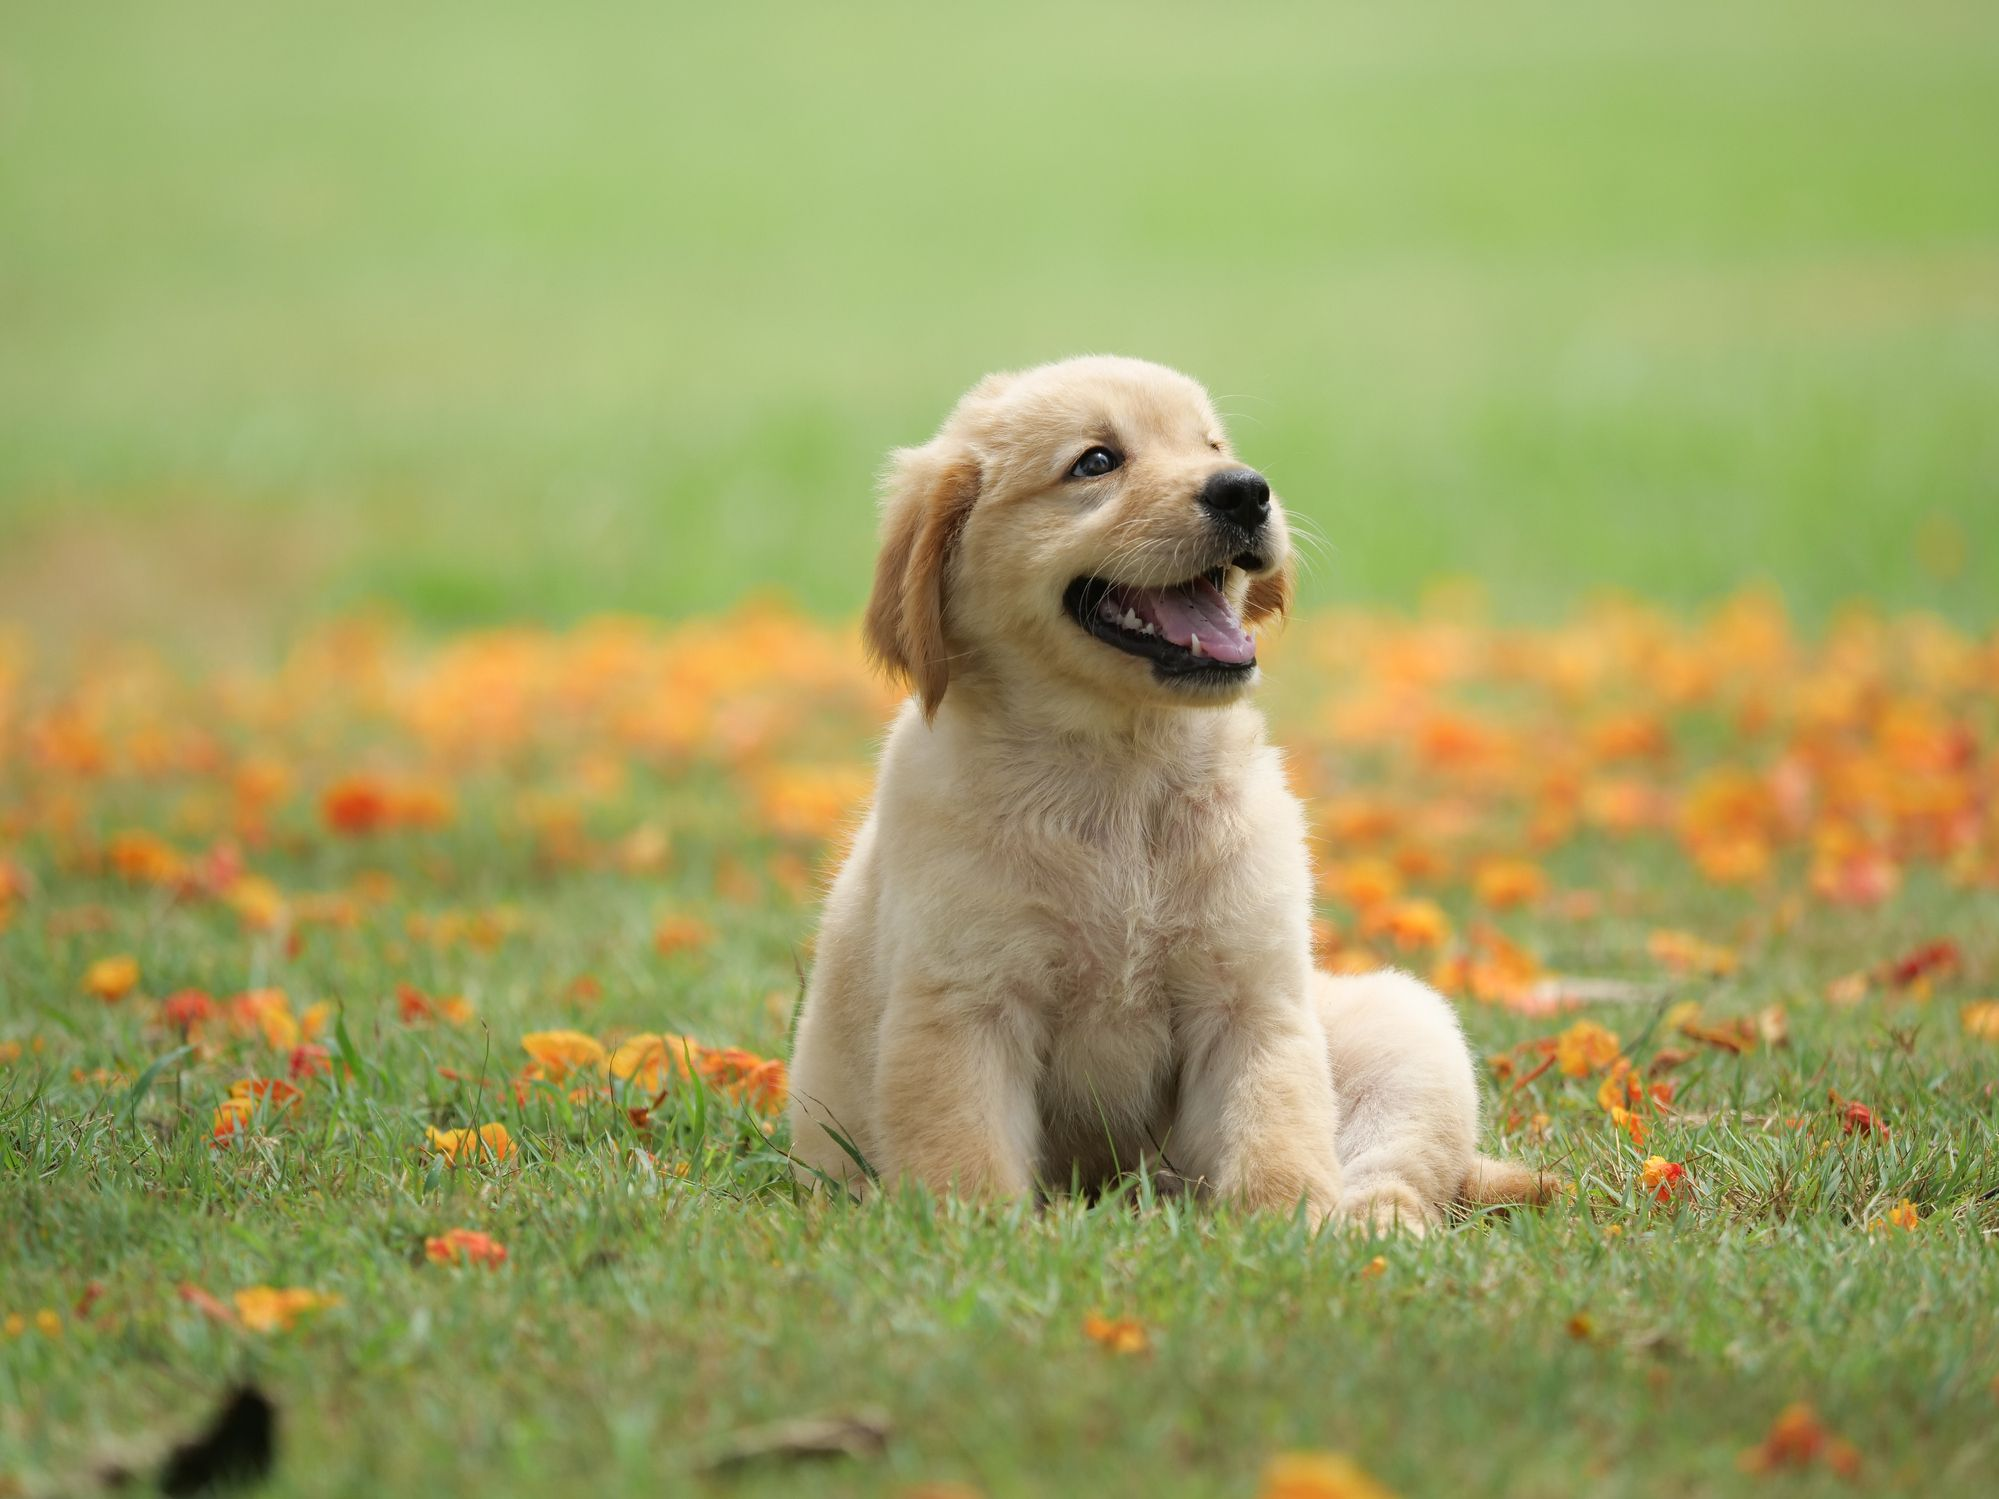 The 25 Cutest Dog Breeds - Most Adorable Dogs and Puppies